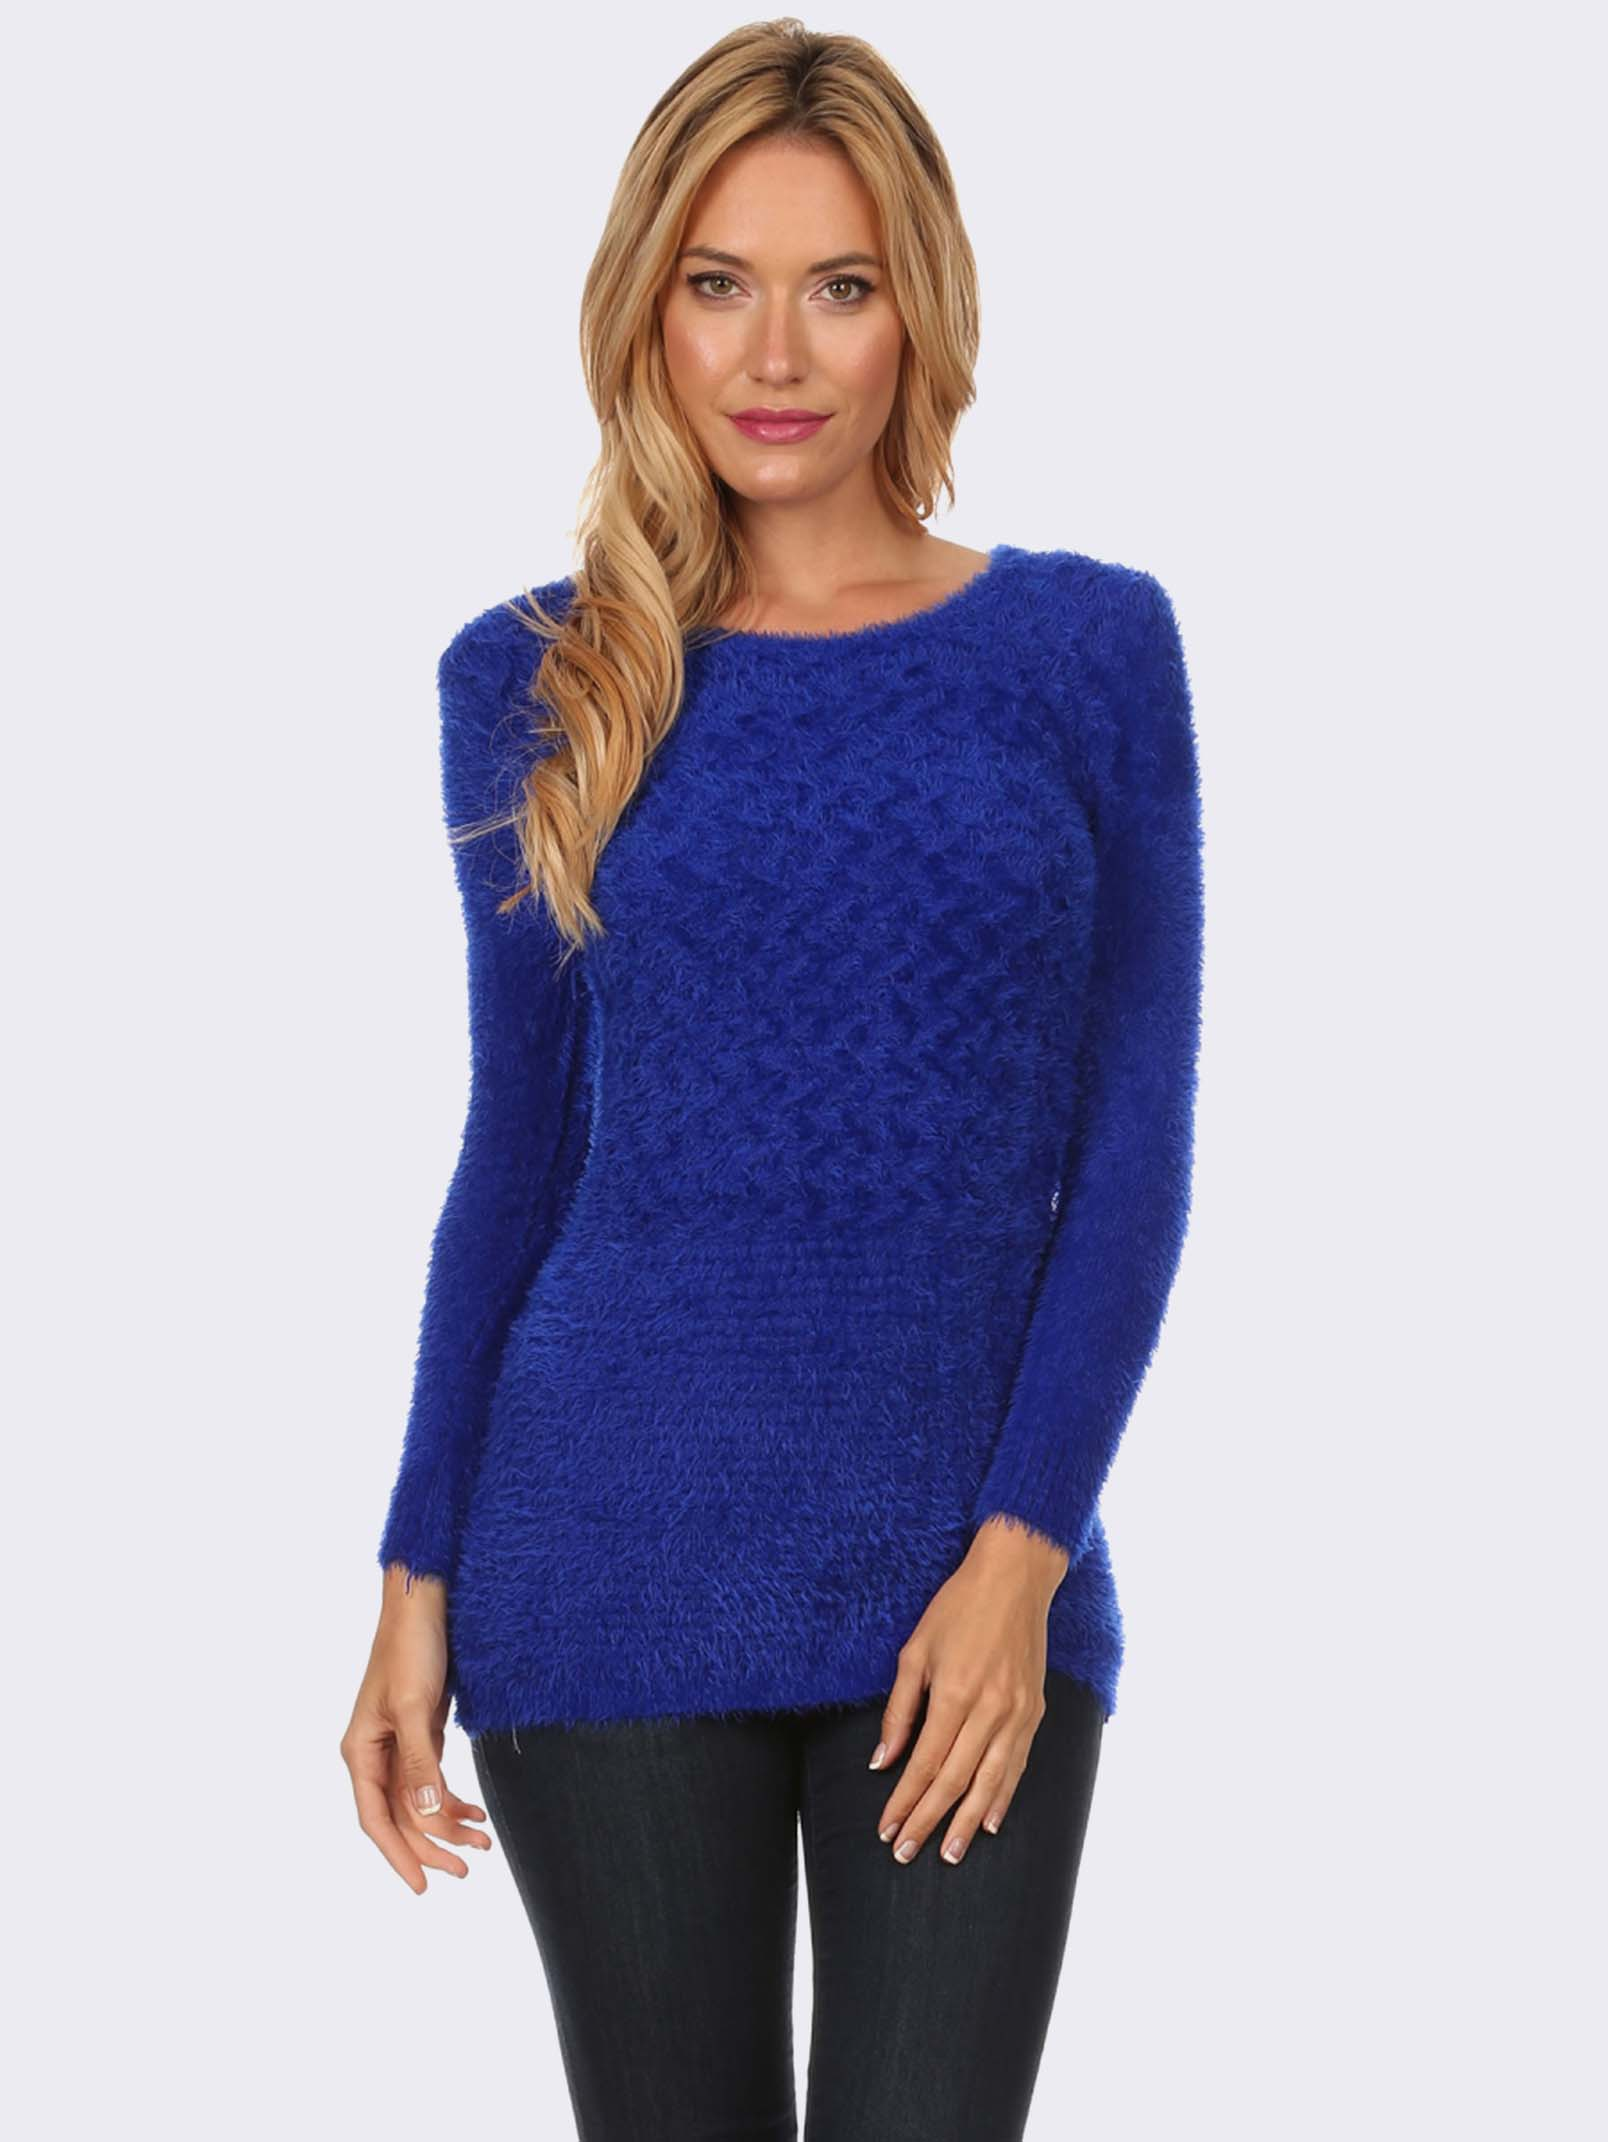 Find blue knit sweater at ShopStyle. Shop the latest collection of blue knit sweater from the most popular stores - all in one place.